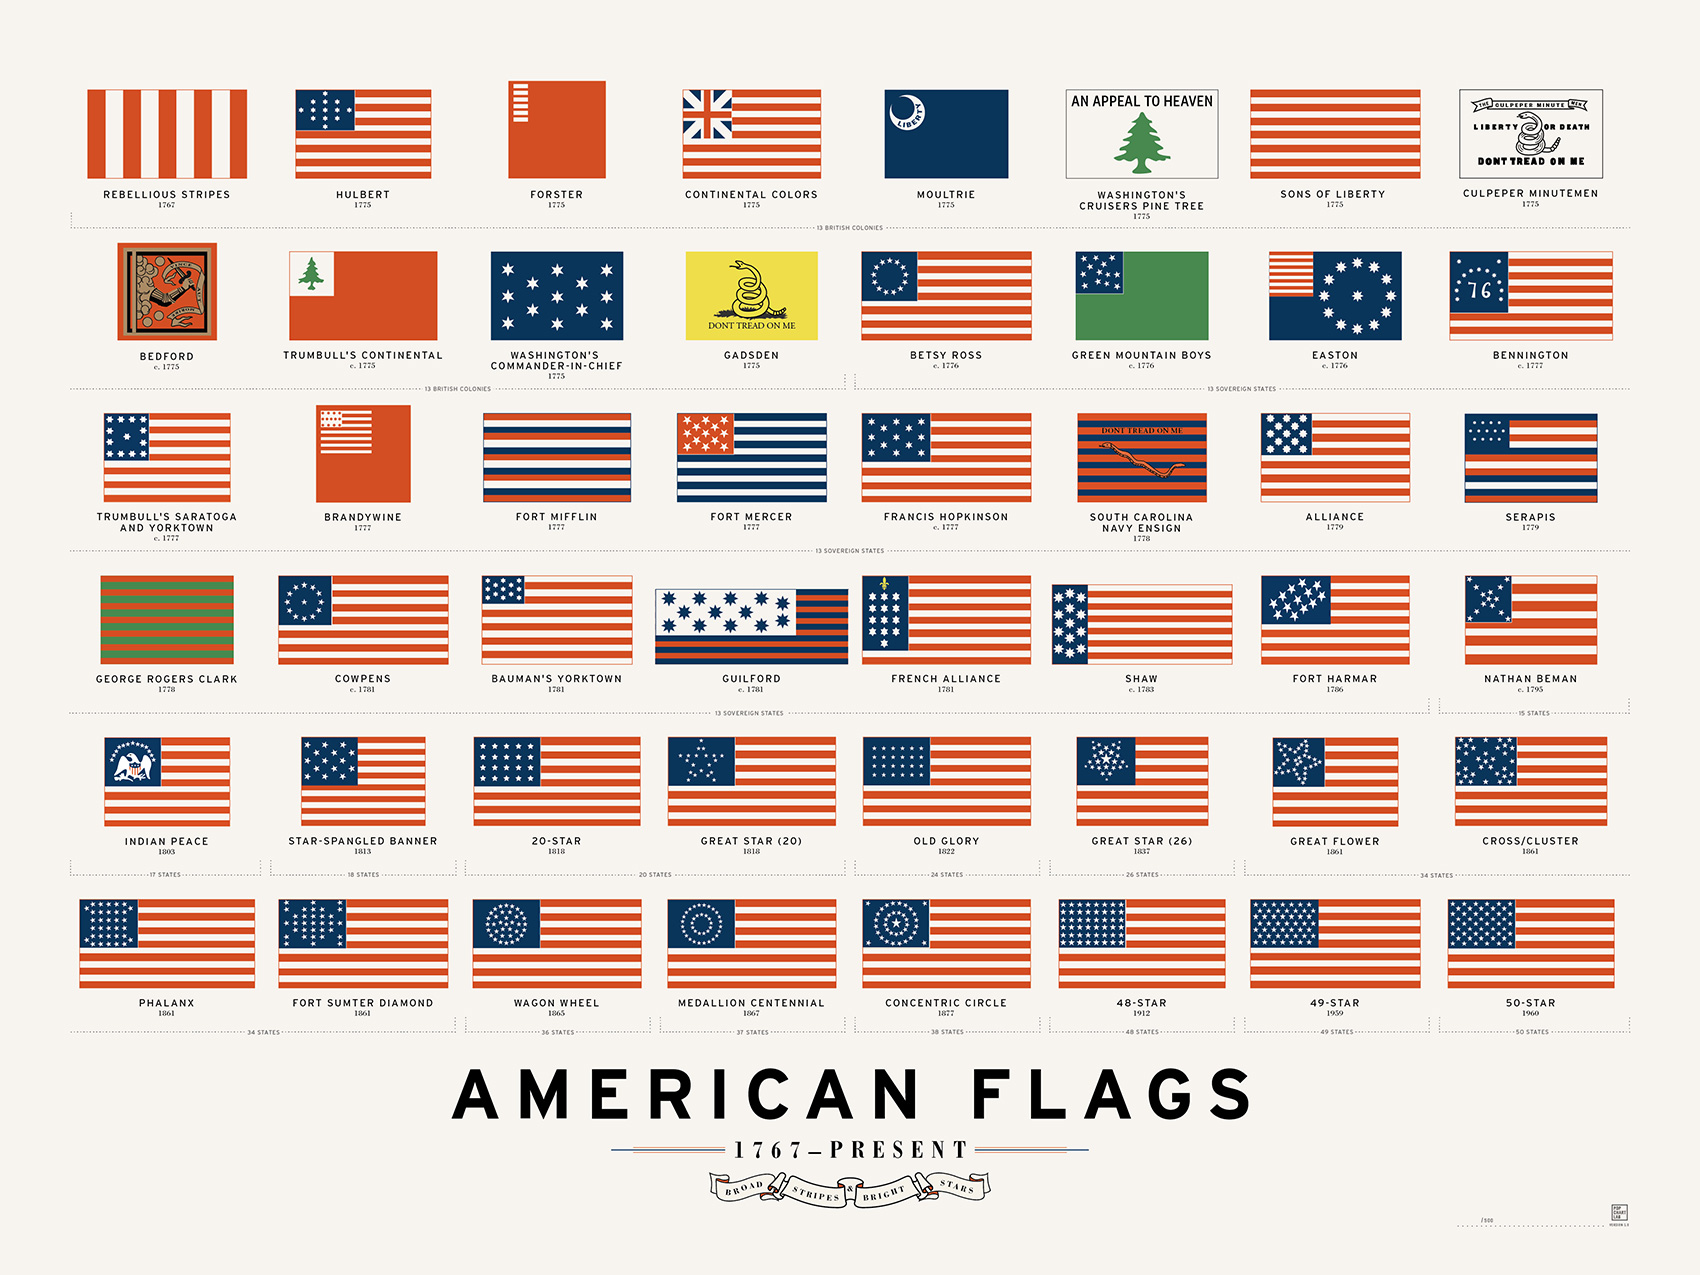 infographic american flags 1767 present michael ForHistory Of American Flags